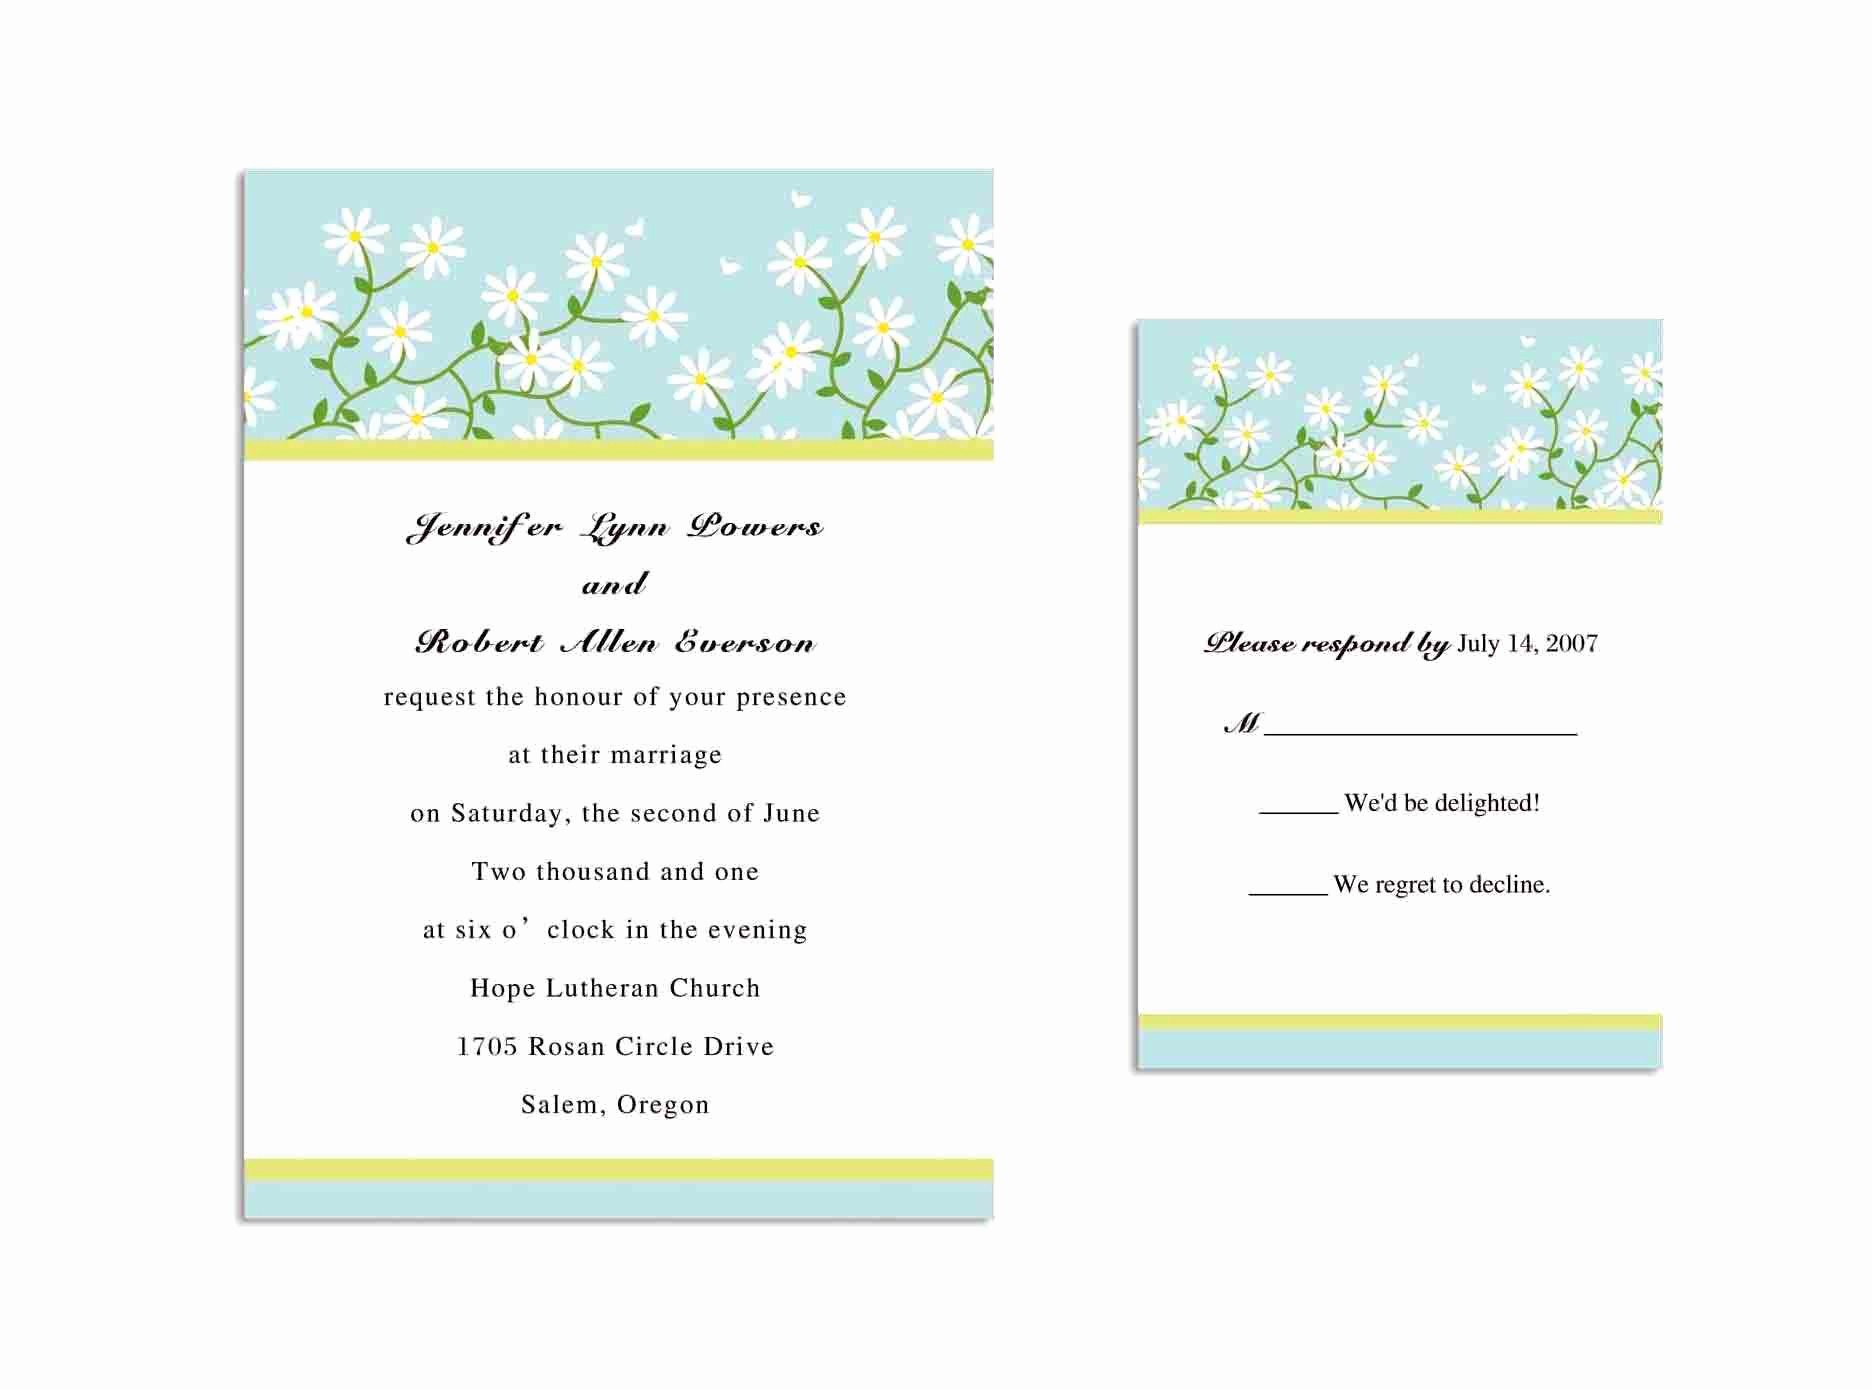 Microsoft Word Template for Invitations Awesome Engagement Party Invitation Word Templates Free Card